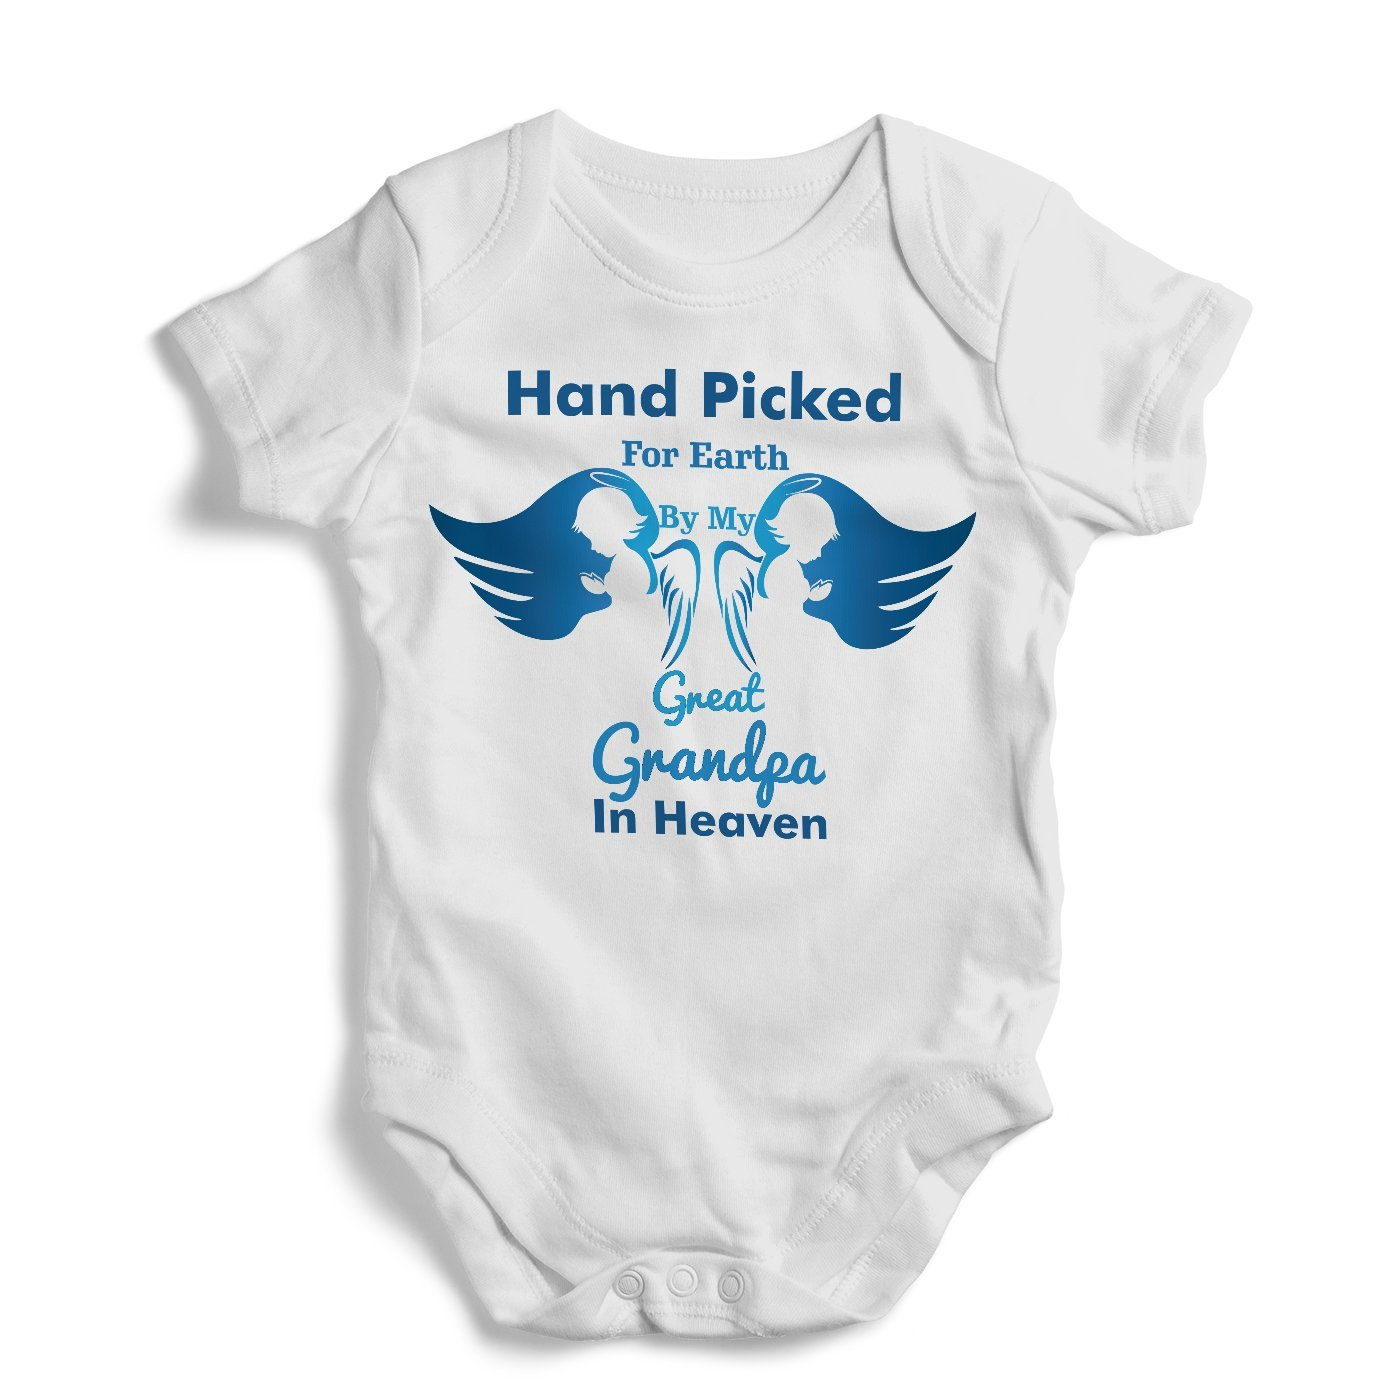 6ea5142d8 Amazon.com: Hand Picked For Earth By My Great Grandpa In Heaven - Onesie,  Funny, Humor, Baby Bodysuit, Romper, One Piece, New born: Clothing